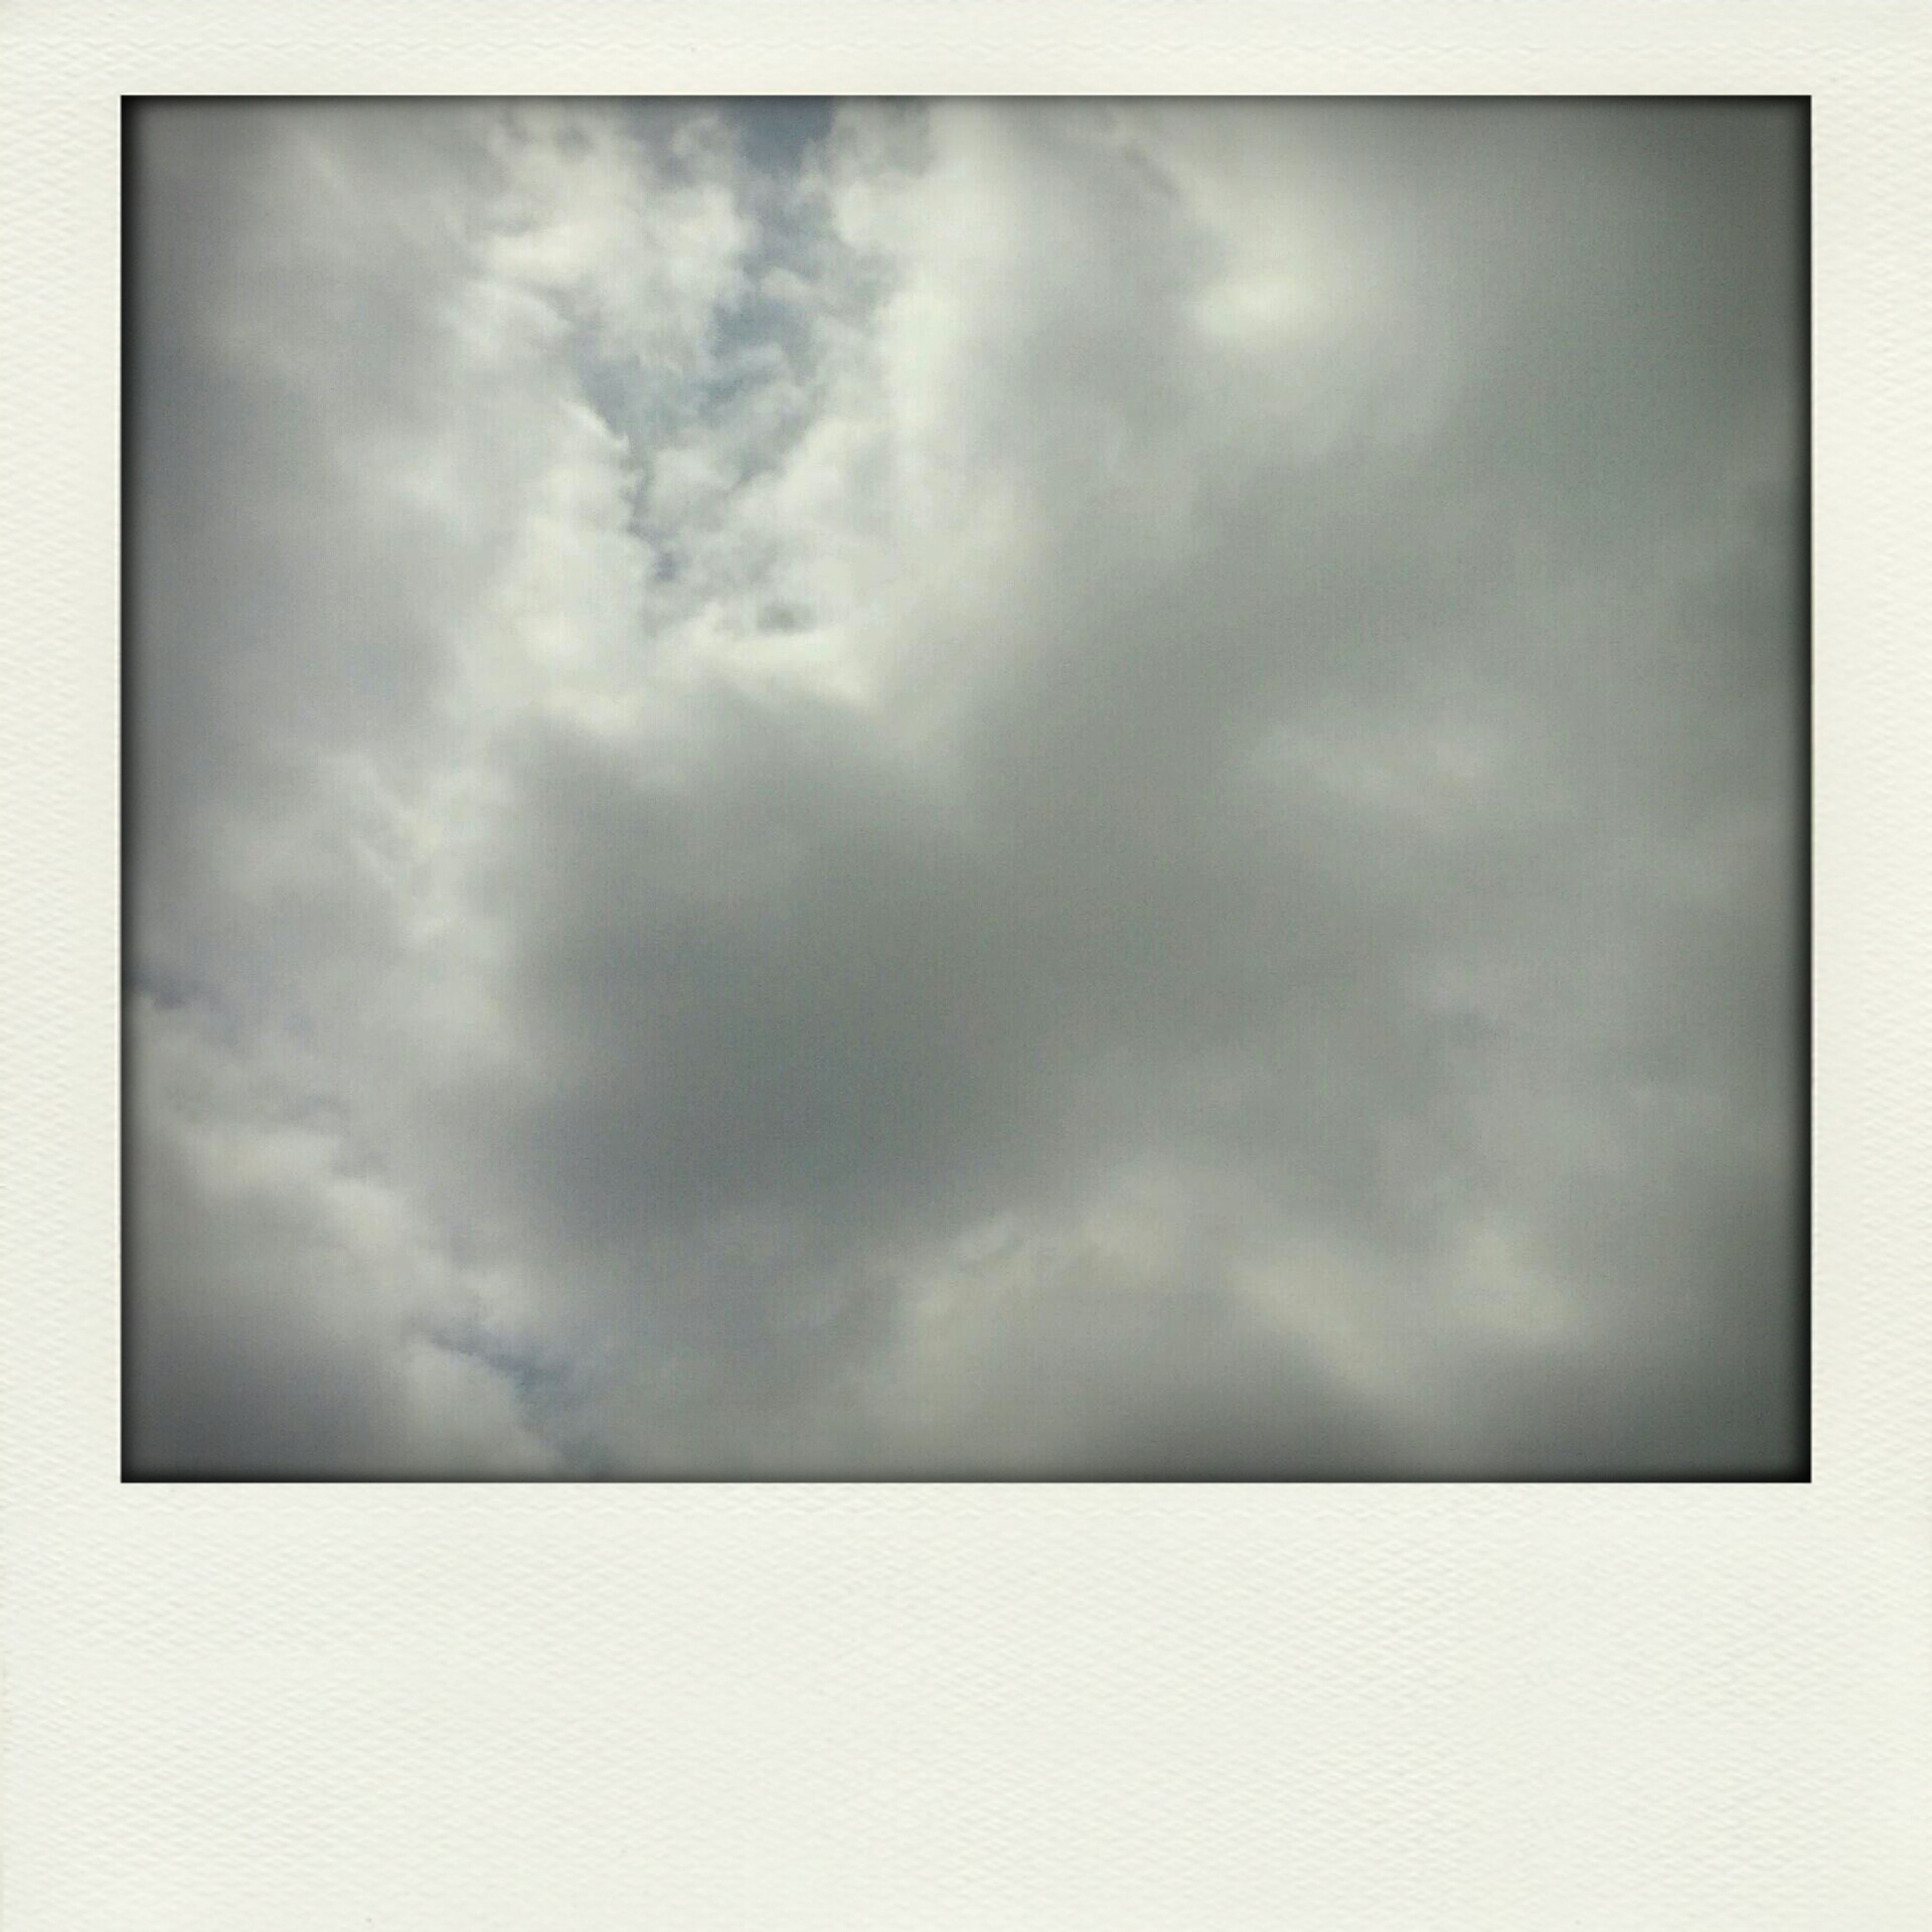 sky, cloud - sky, cloudy, transfer print, low angle view, overcast, weather, auto post production filter, beauty in nature, tranquility, nature, scenics, cloud, storm cloud, cloudscape, tranquil scene, sky only, outdoors, idyllic, no people